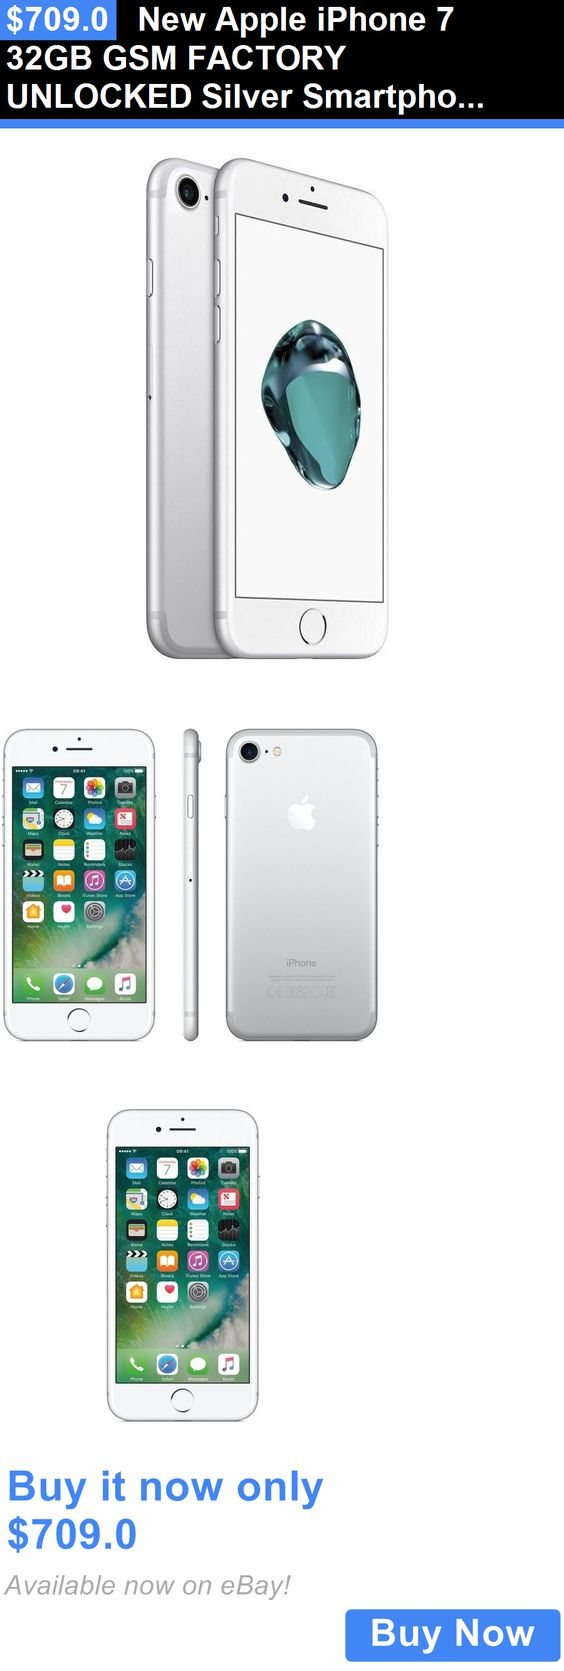 cell phones: New Apple Iphone 7 32Gb Gsm Factory Unlocked Silver Smartphone BUY IT NOW ONLY: $709.0